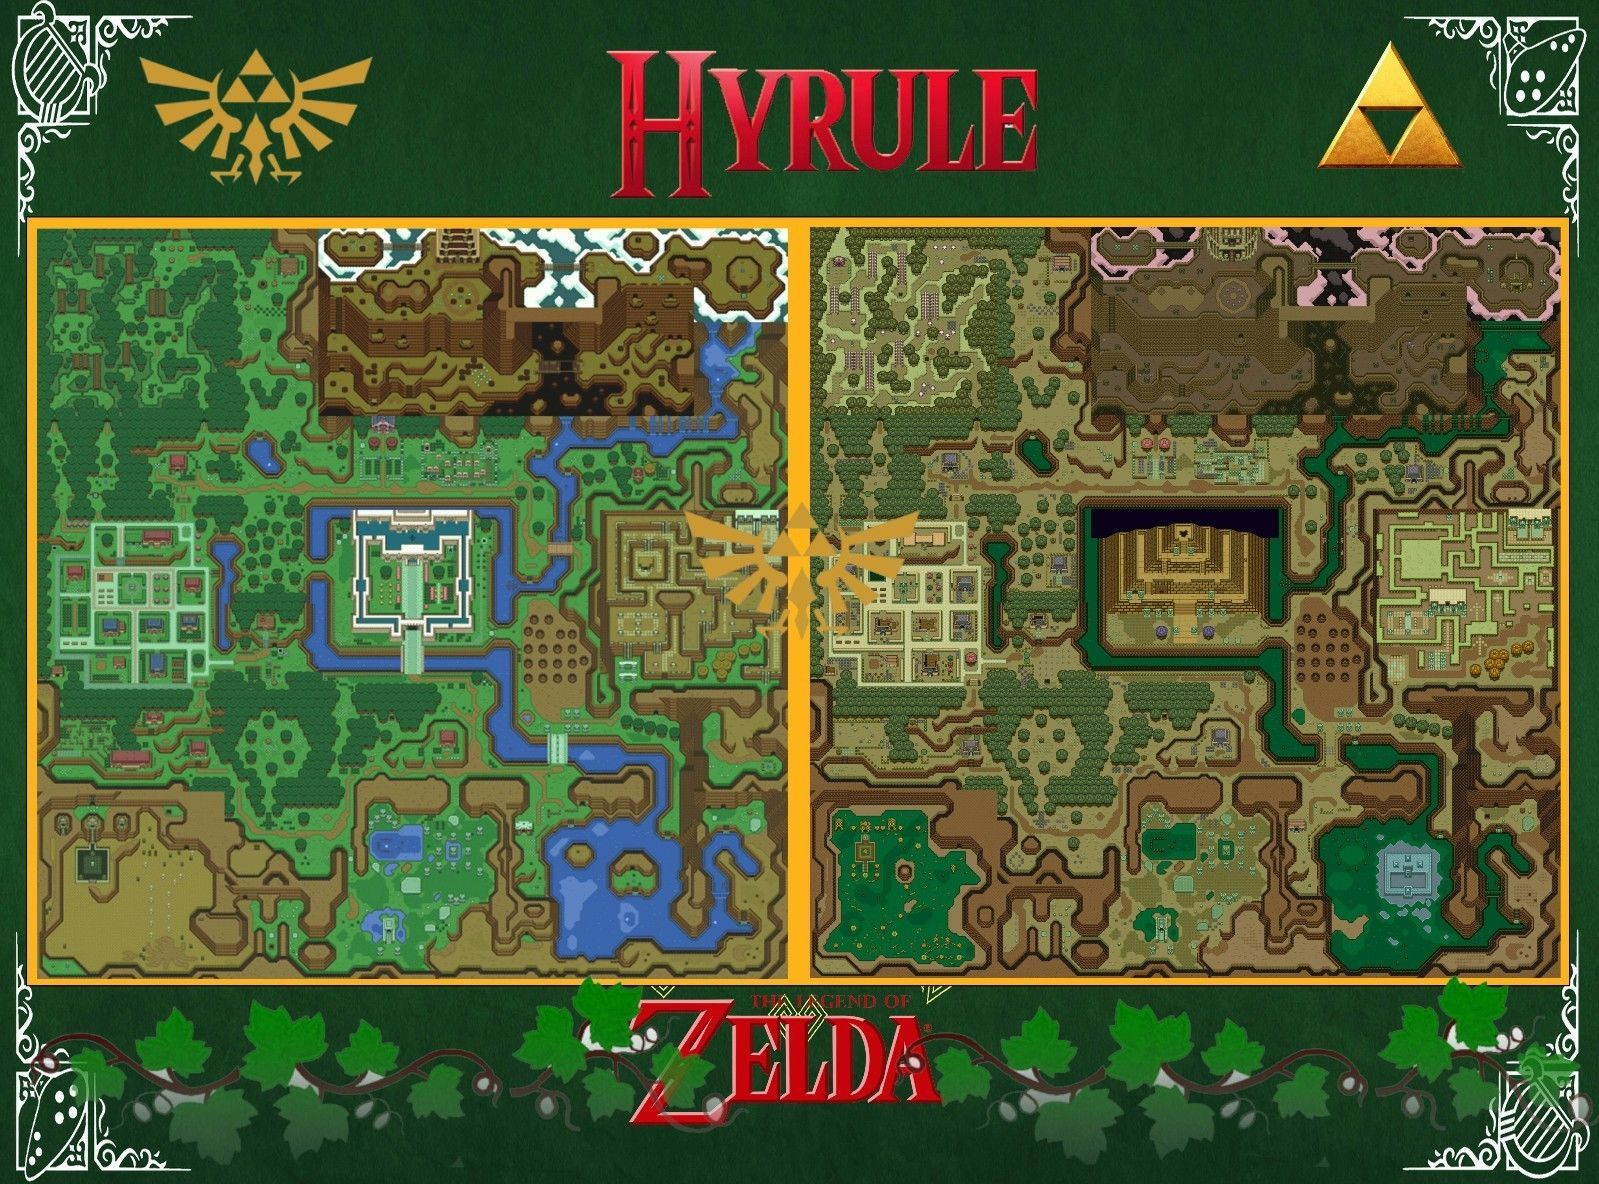 Zelda Map A Link To The Past Wall Poster 22in X 34in Zelda